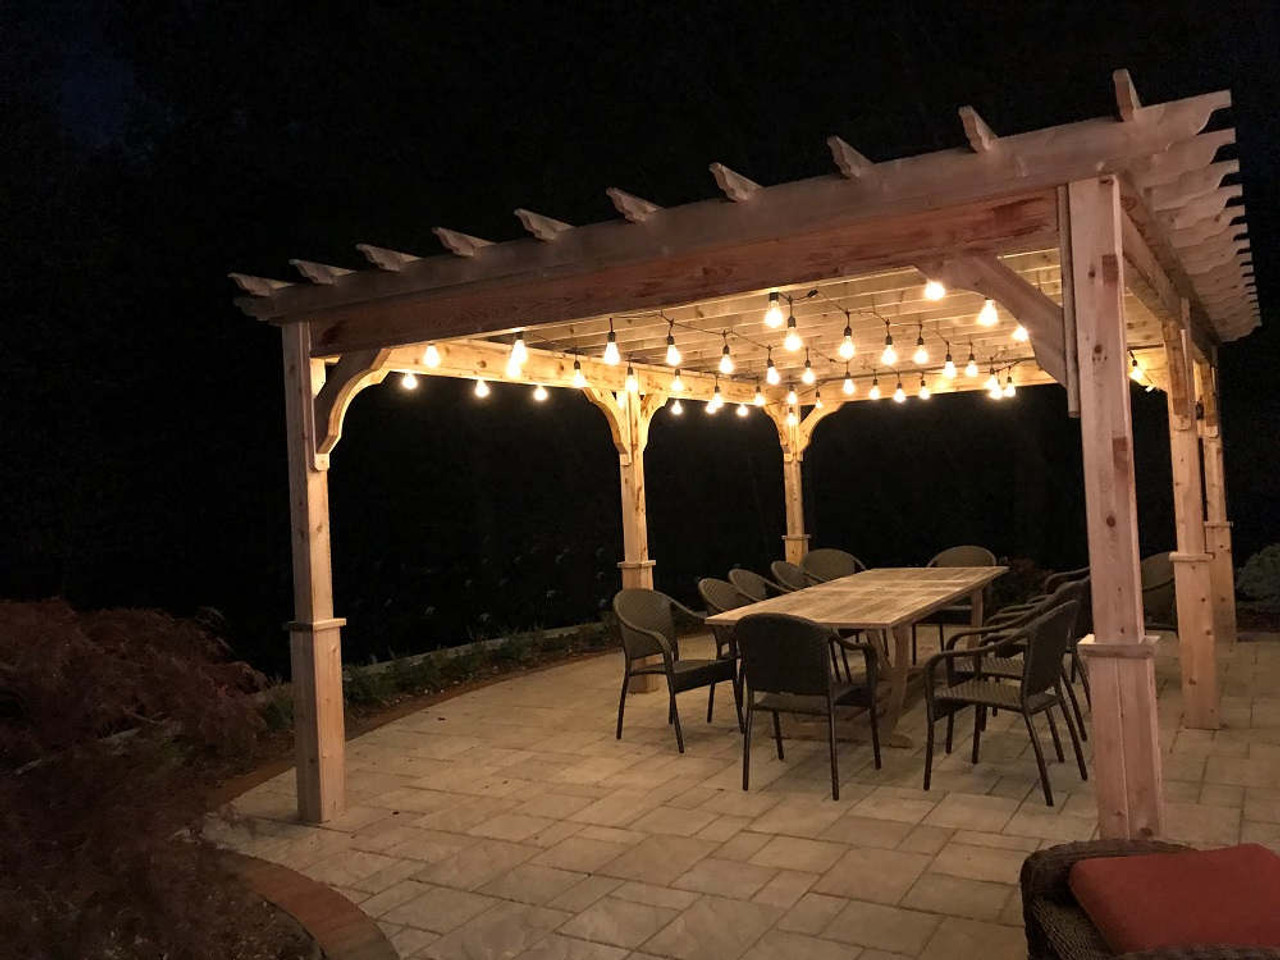 12x20 Serenity Pergola Kit, Party Lights, Bedford, NH